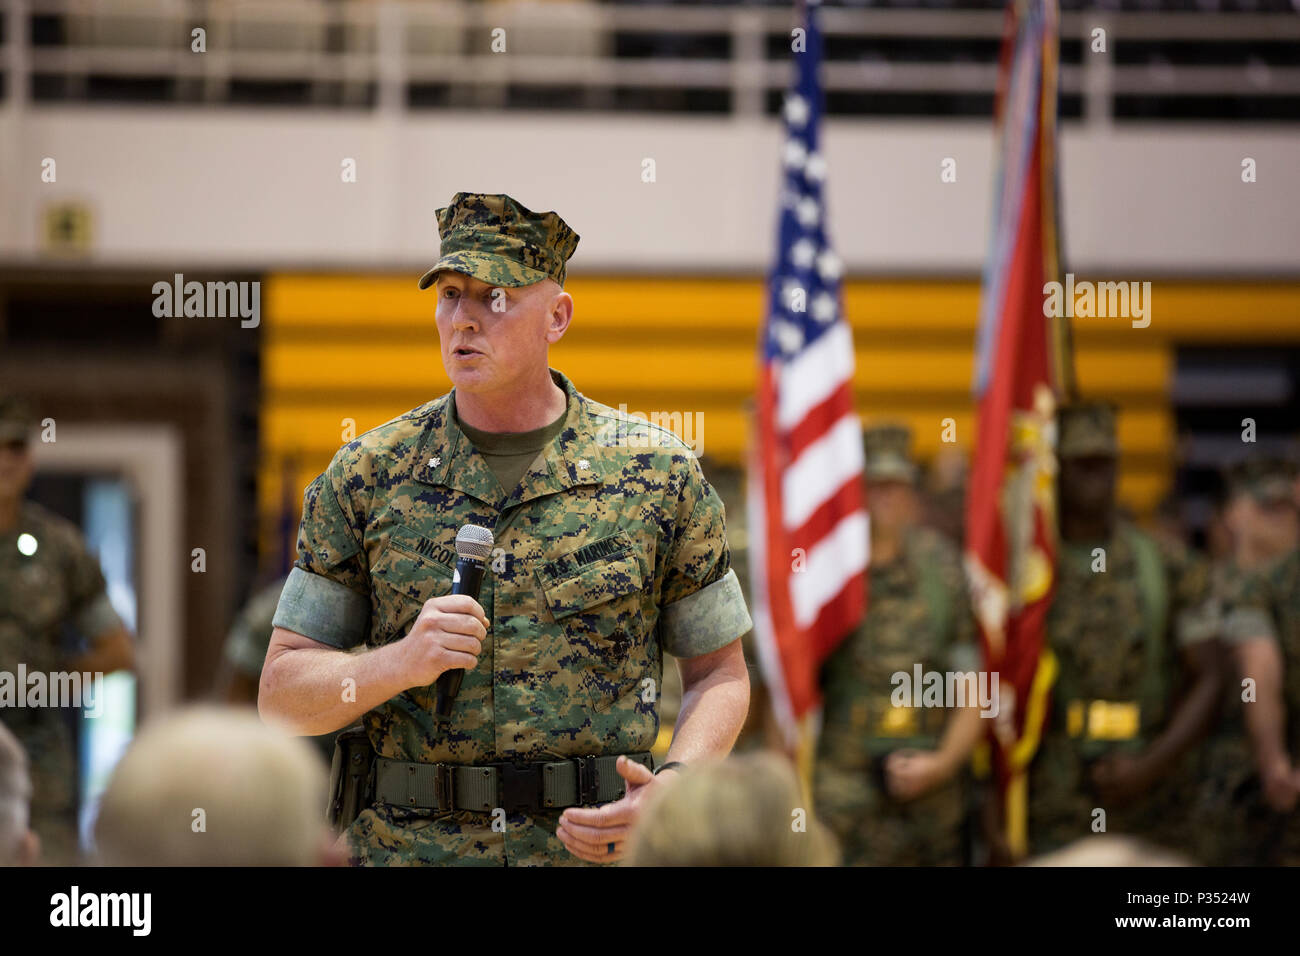 U.S. Marine Corps Lt. Col. Charles D. Nicol, incoming commanding officer of 2nd Tank Battalion, 2nd Marine Division, offers remarks during a change of command ceremony at Camp Lejeune, N.C., June 15, 2018. During the ceremony, Lt. Col. Lance J. Langfeldt relinquished command of the unit to Nicol. (U.S. Marine Corps photo by Cpl. Melanye Martinez) - Stock Image